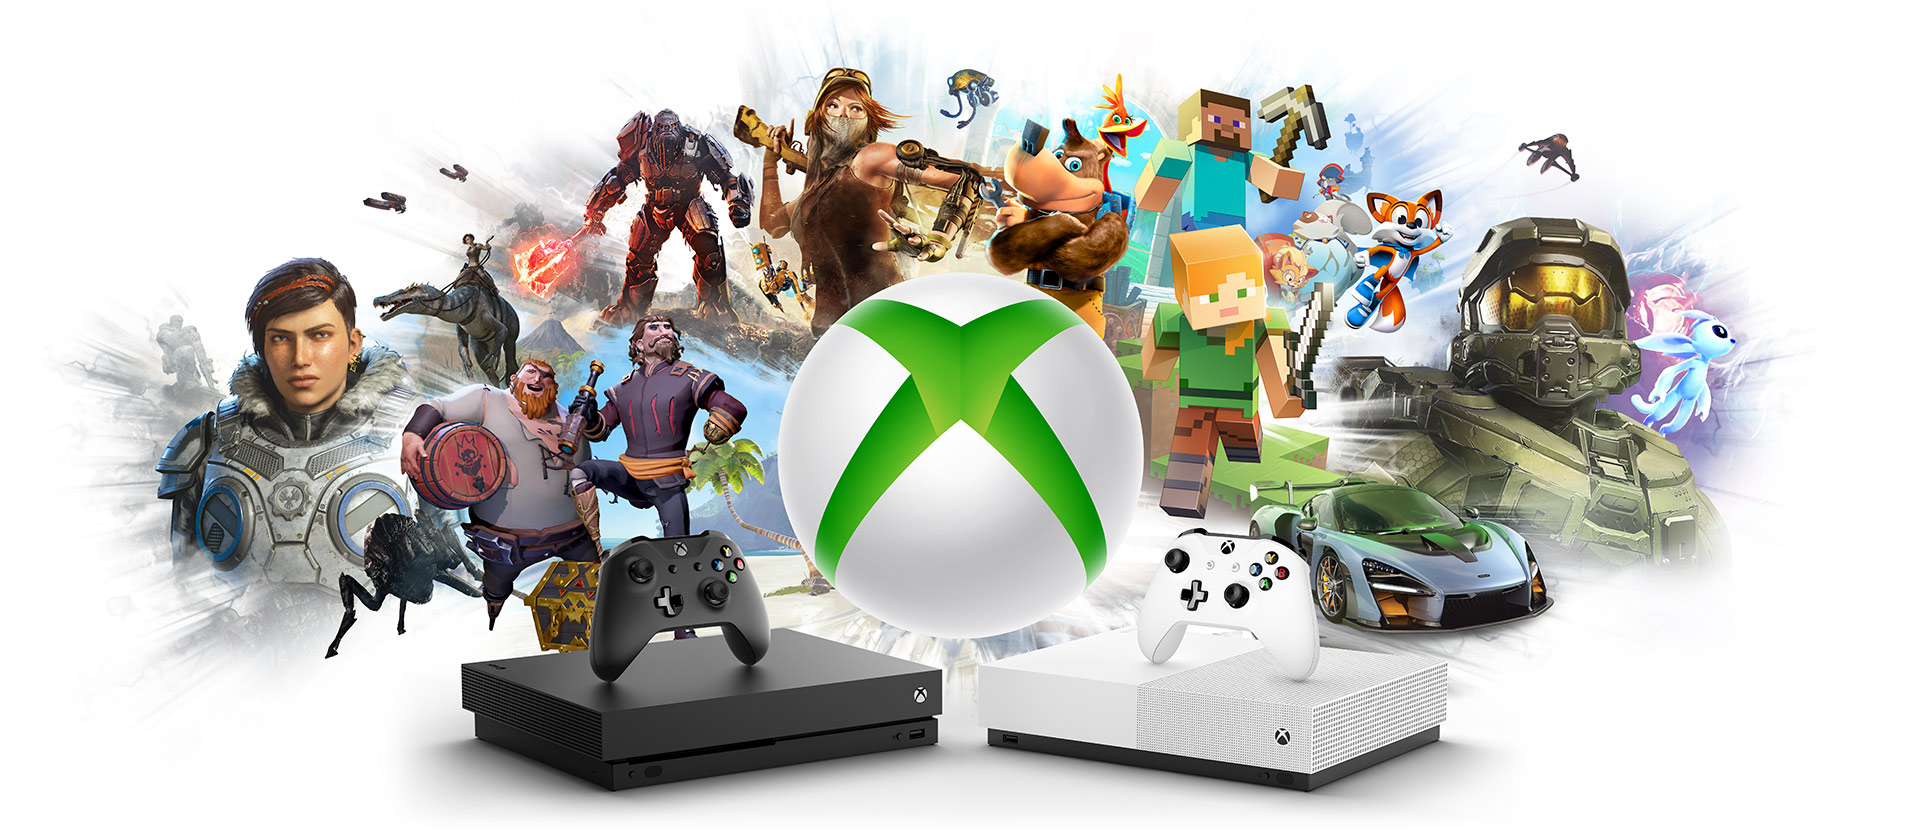 Xbox One X and Xbox One S All-digital Edition in front of a collage of Xbox game characters